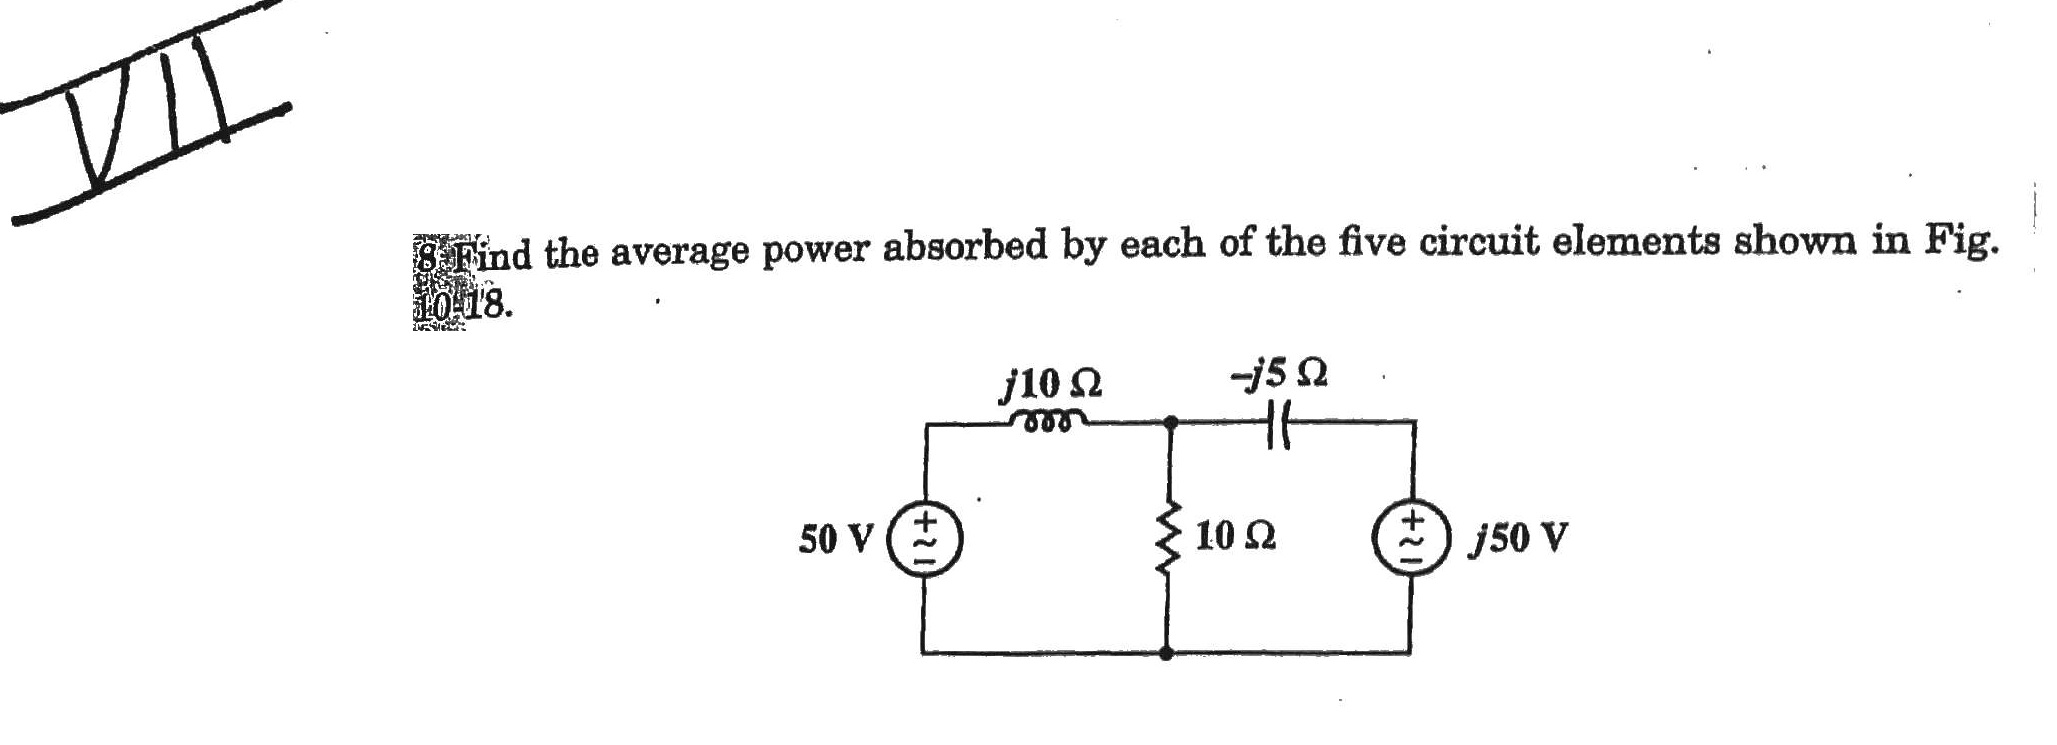 Find the average power absorbed by each of the fi